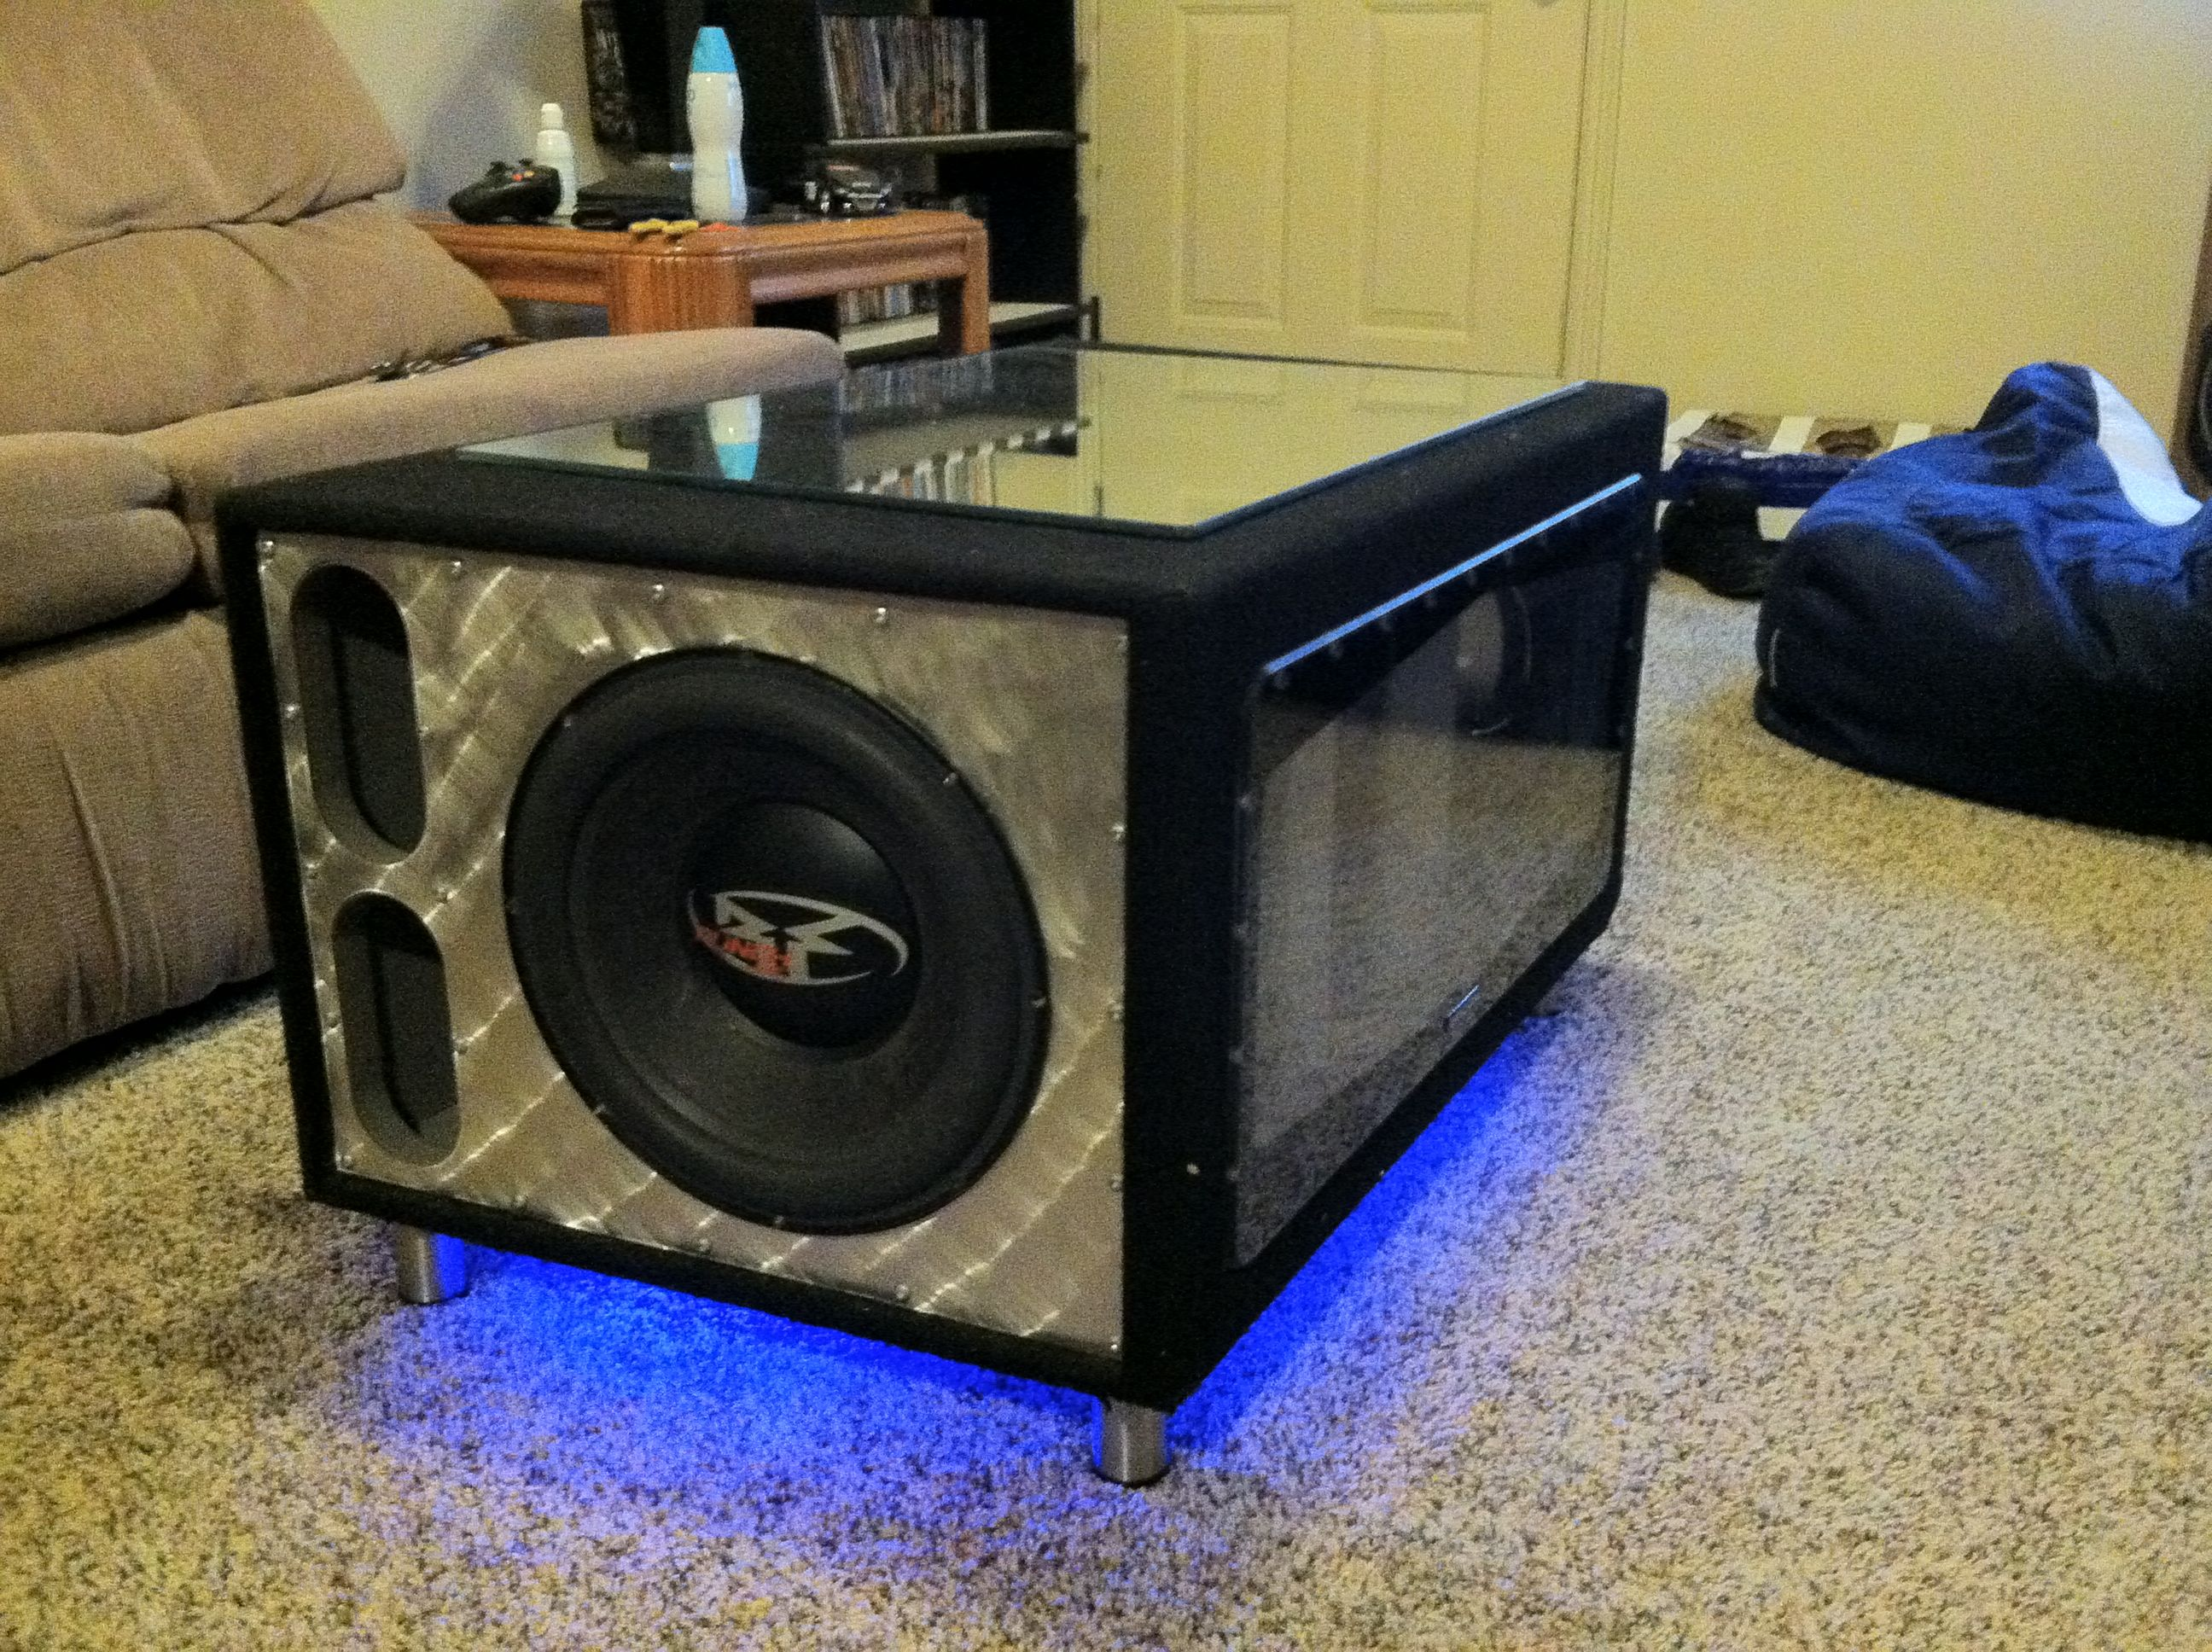 how to make subwoofer sound better on table